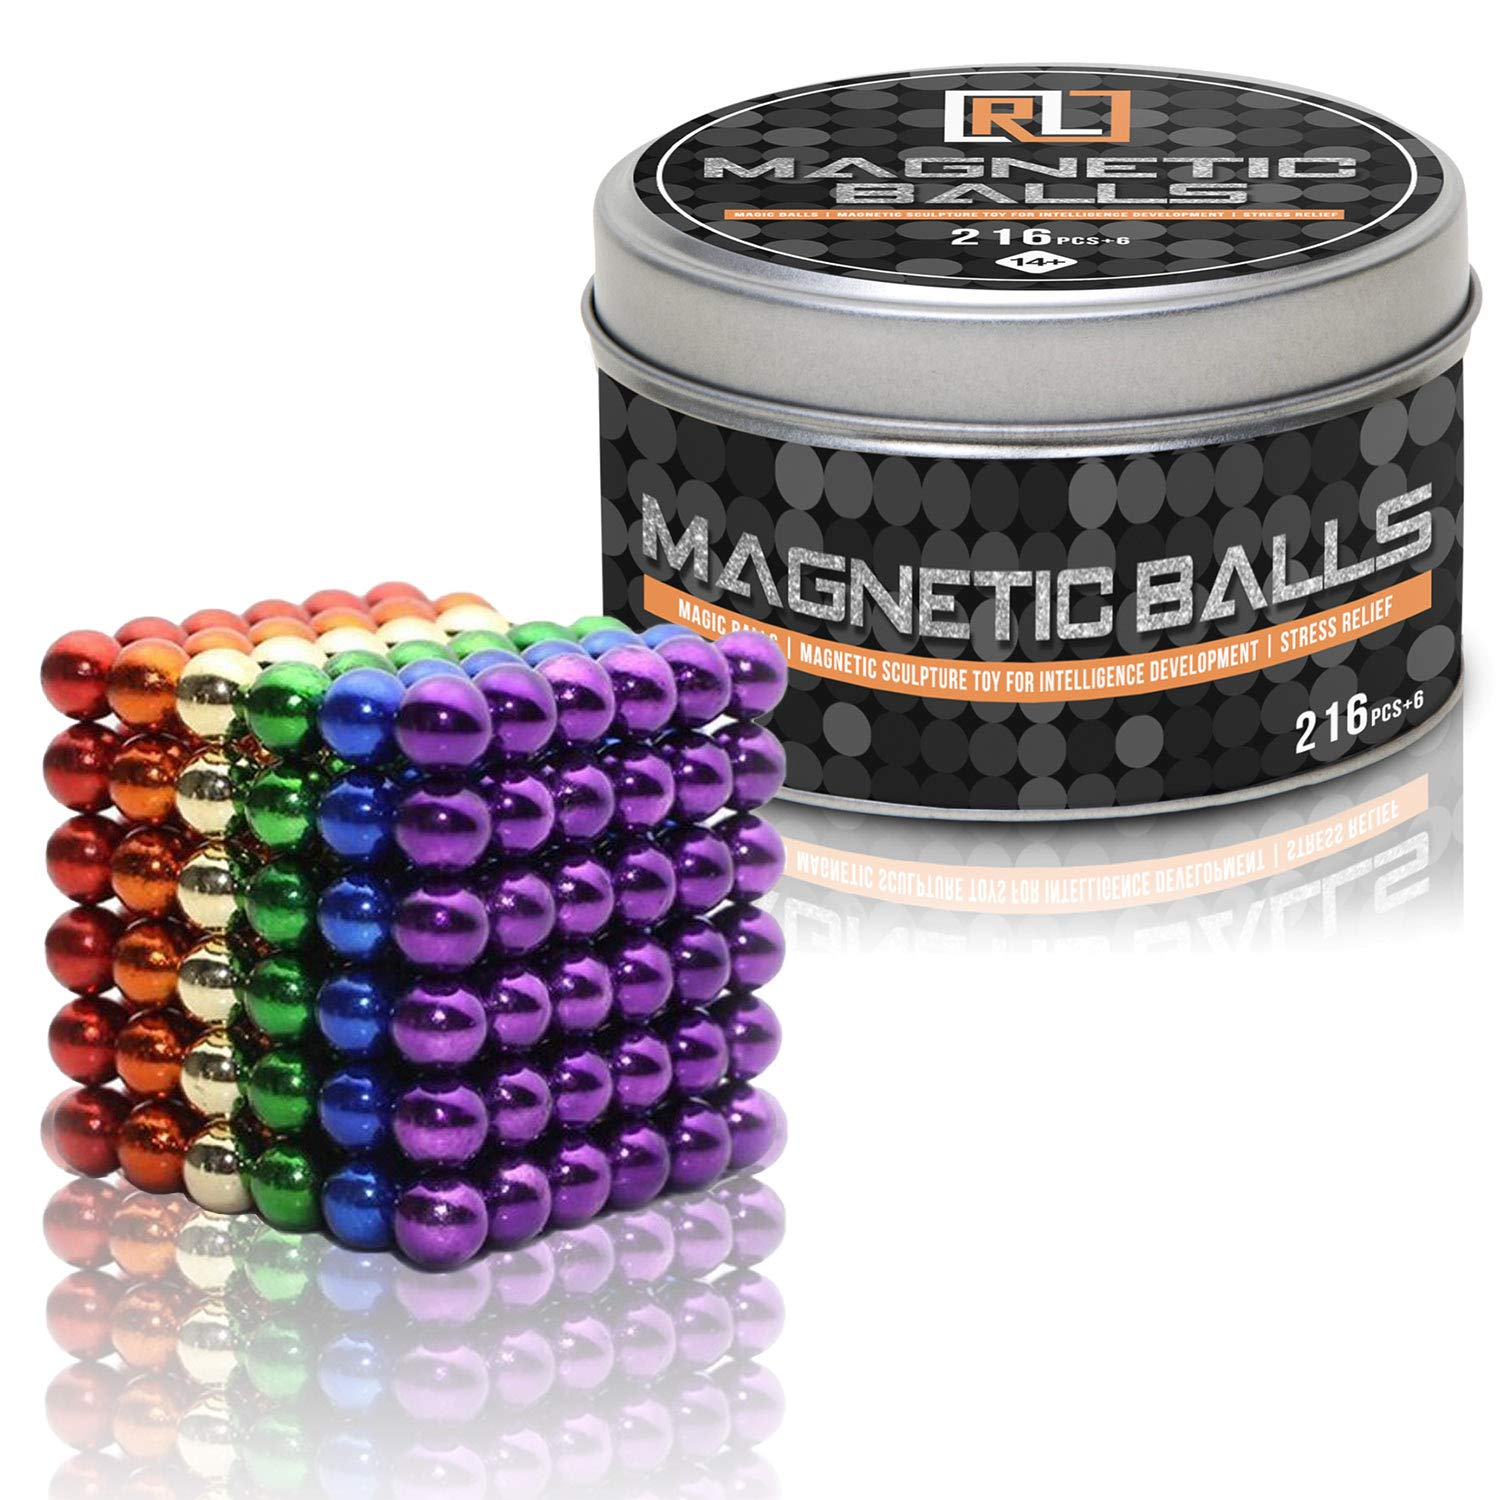 R&L Magnetic Sphere 216 PCS + 6, 5mm Fidget Toy for Education and Intelligent Development (Multi-Color) by R&L (Image #1)